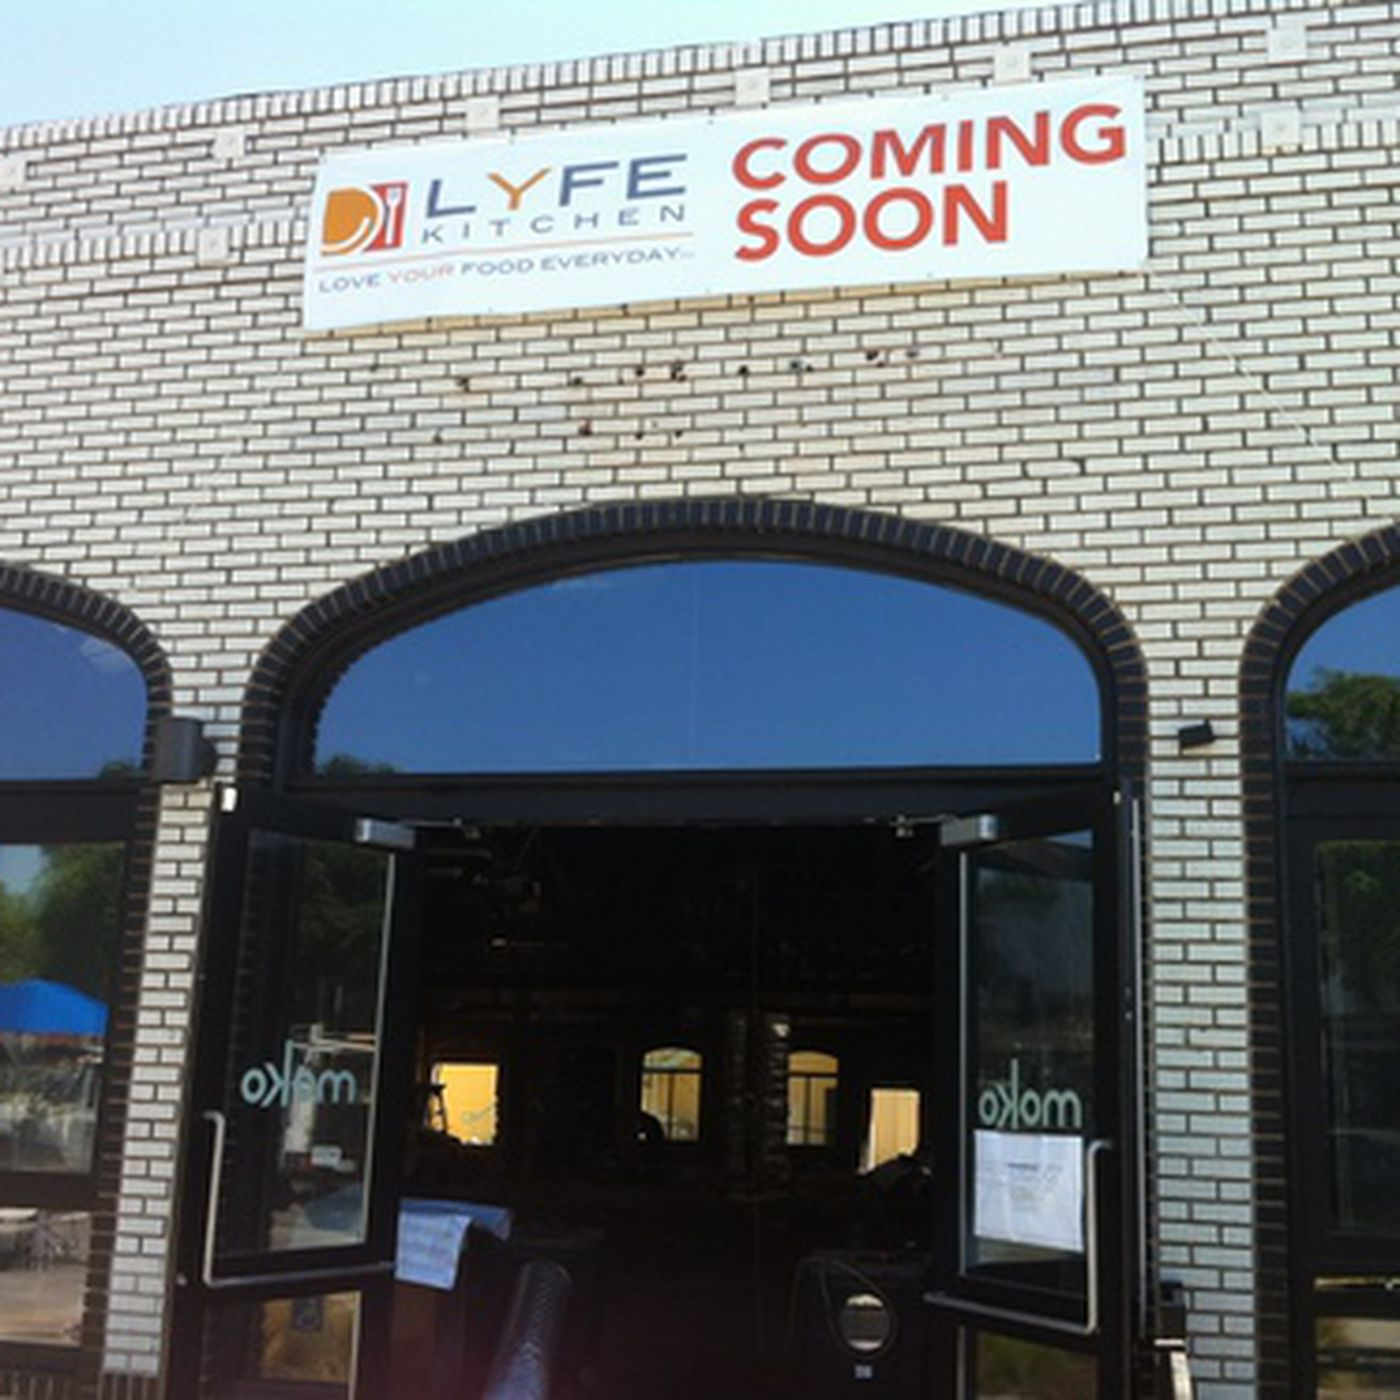 LYFE Kitchen Posted Signage This Week in Culver City - Eater LA